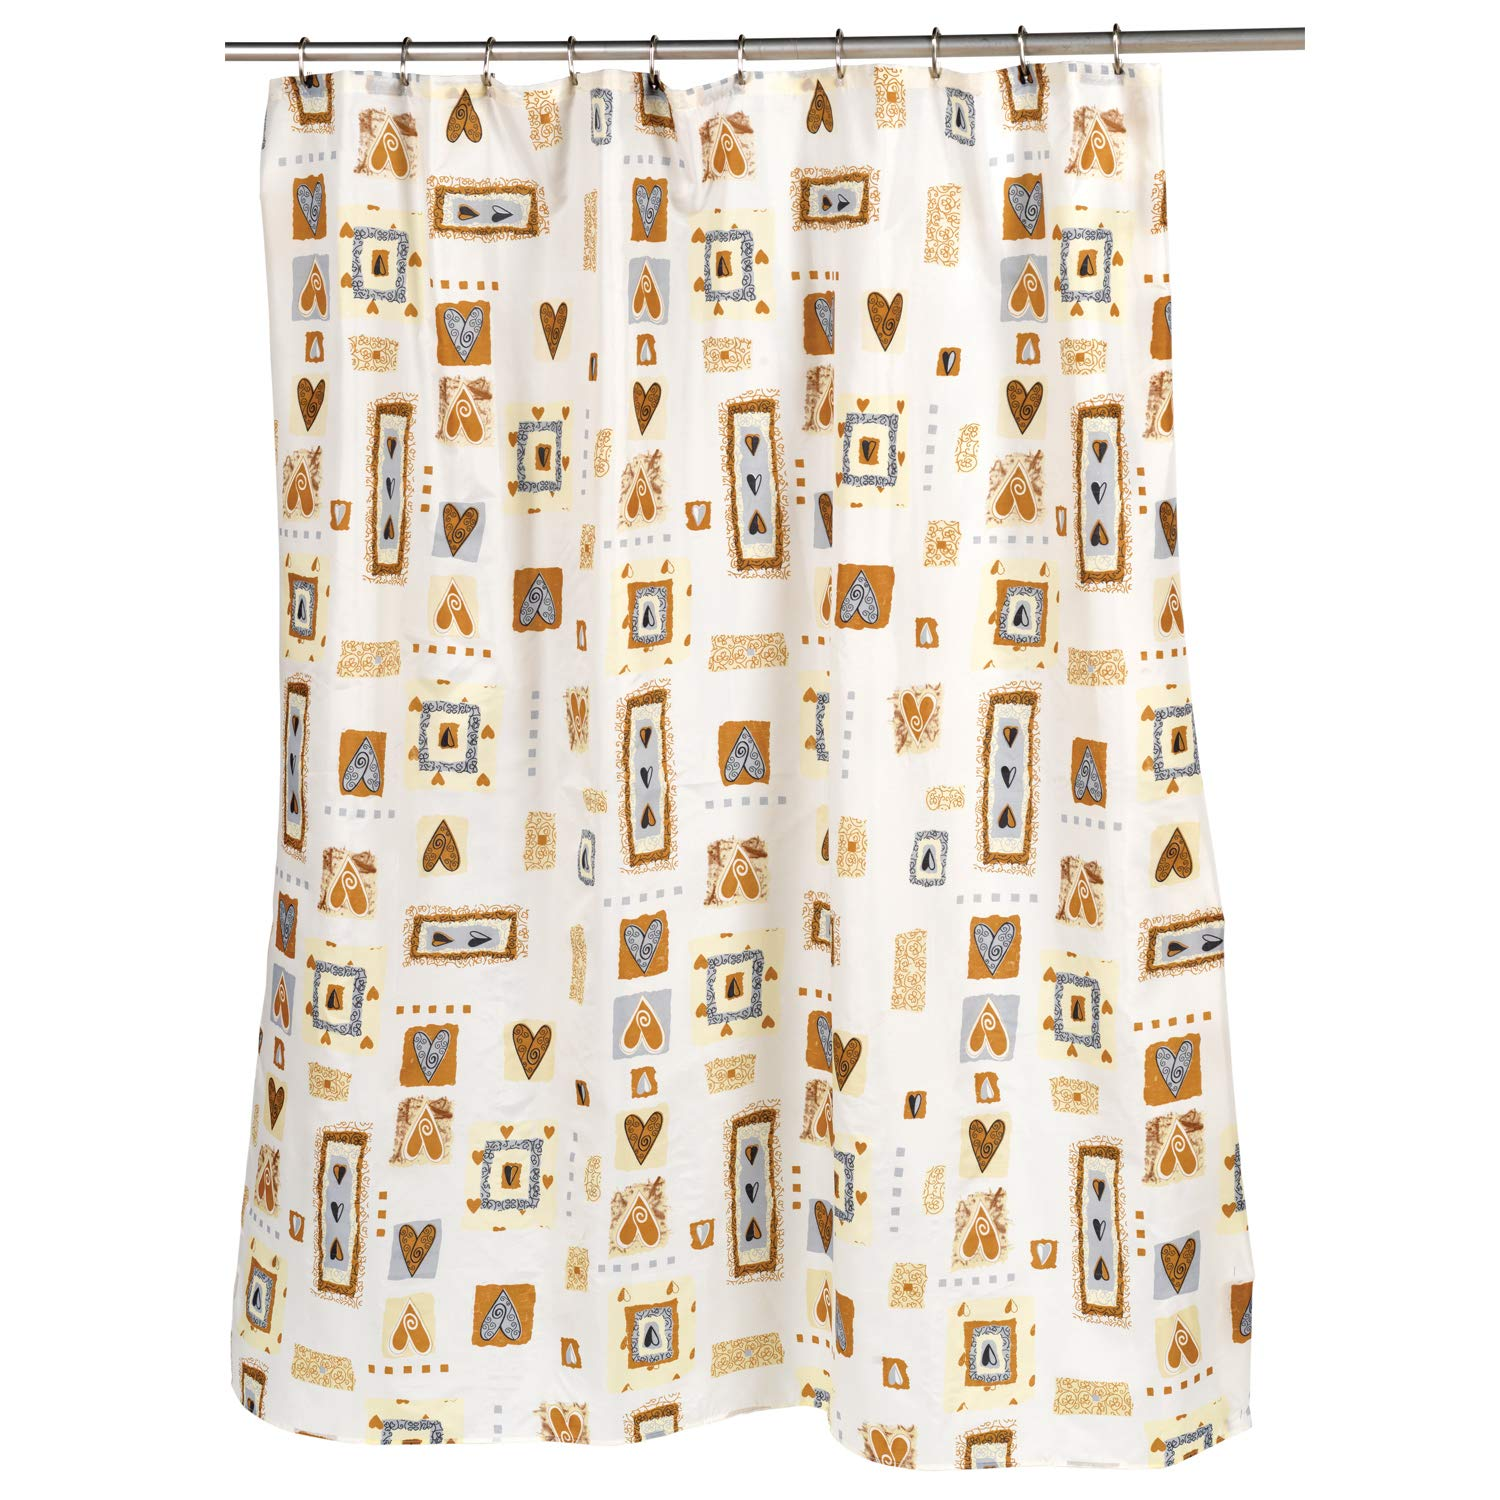 Easy Hang Fun Designs for Shower Stalls /& Bathtubs Standard Anti-Mildew Material Machine Washable Fabric Multi 72 x 70 Water Resistant Sweet Home Collection Curtain